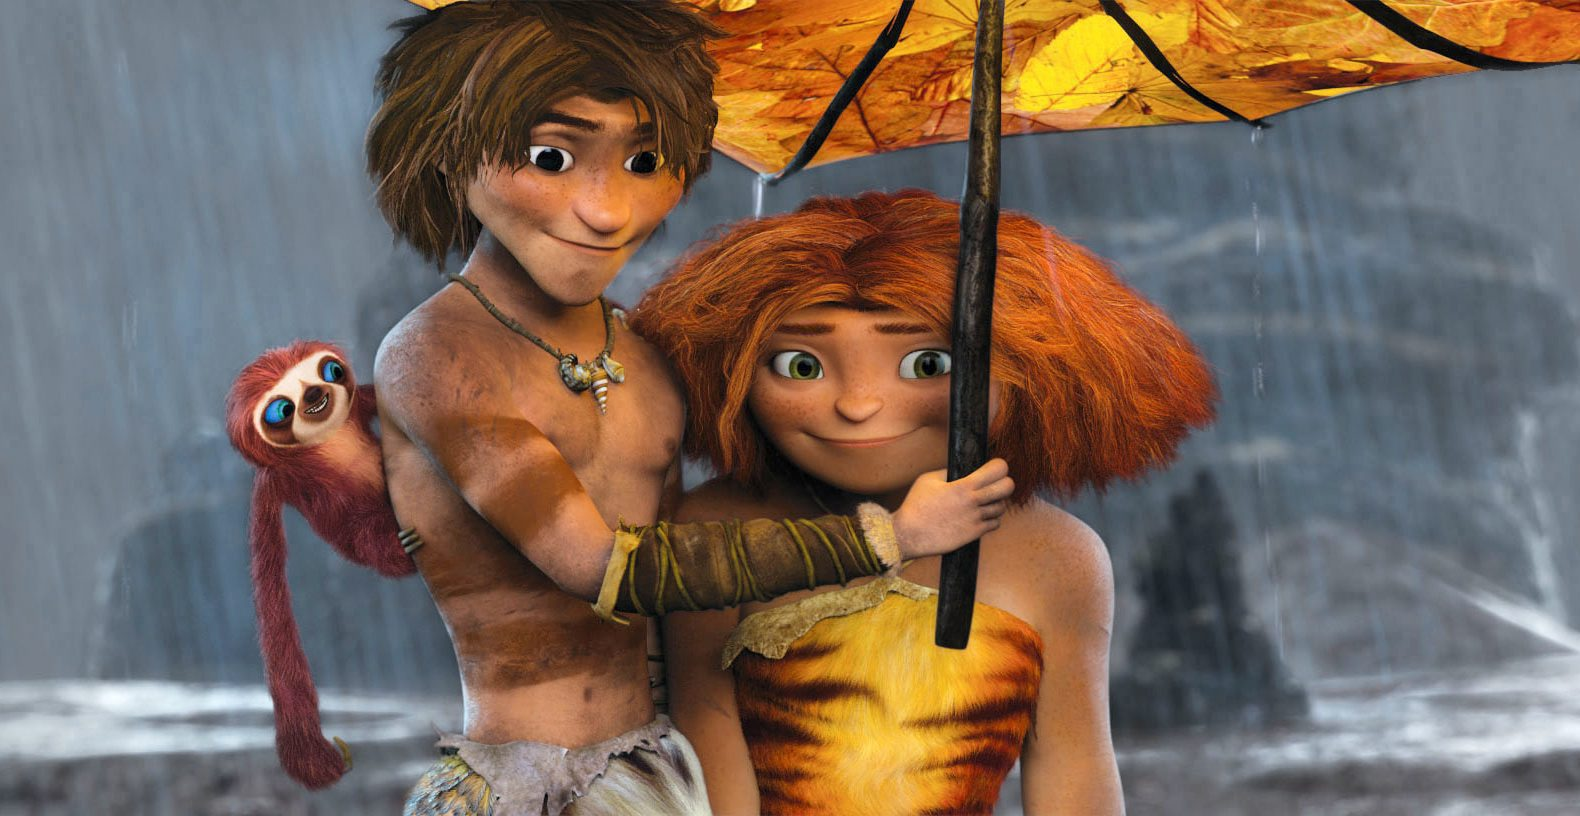 "This film publicity image released by DreamWorks Animation shows, from left: Belt the sloth, voiced by Chris Sanders; Guy, voiced by Ryan Reynolds; and Eep, voiced by Emma Stone, in a scene from ""The Croods."" (AP Photo/DreamWorks Animation) ORG XMIT: NYET209"